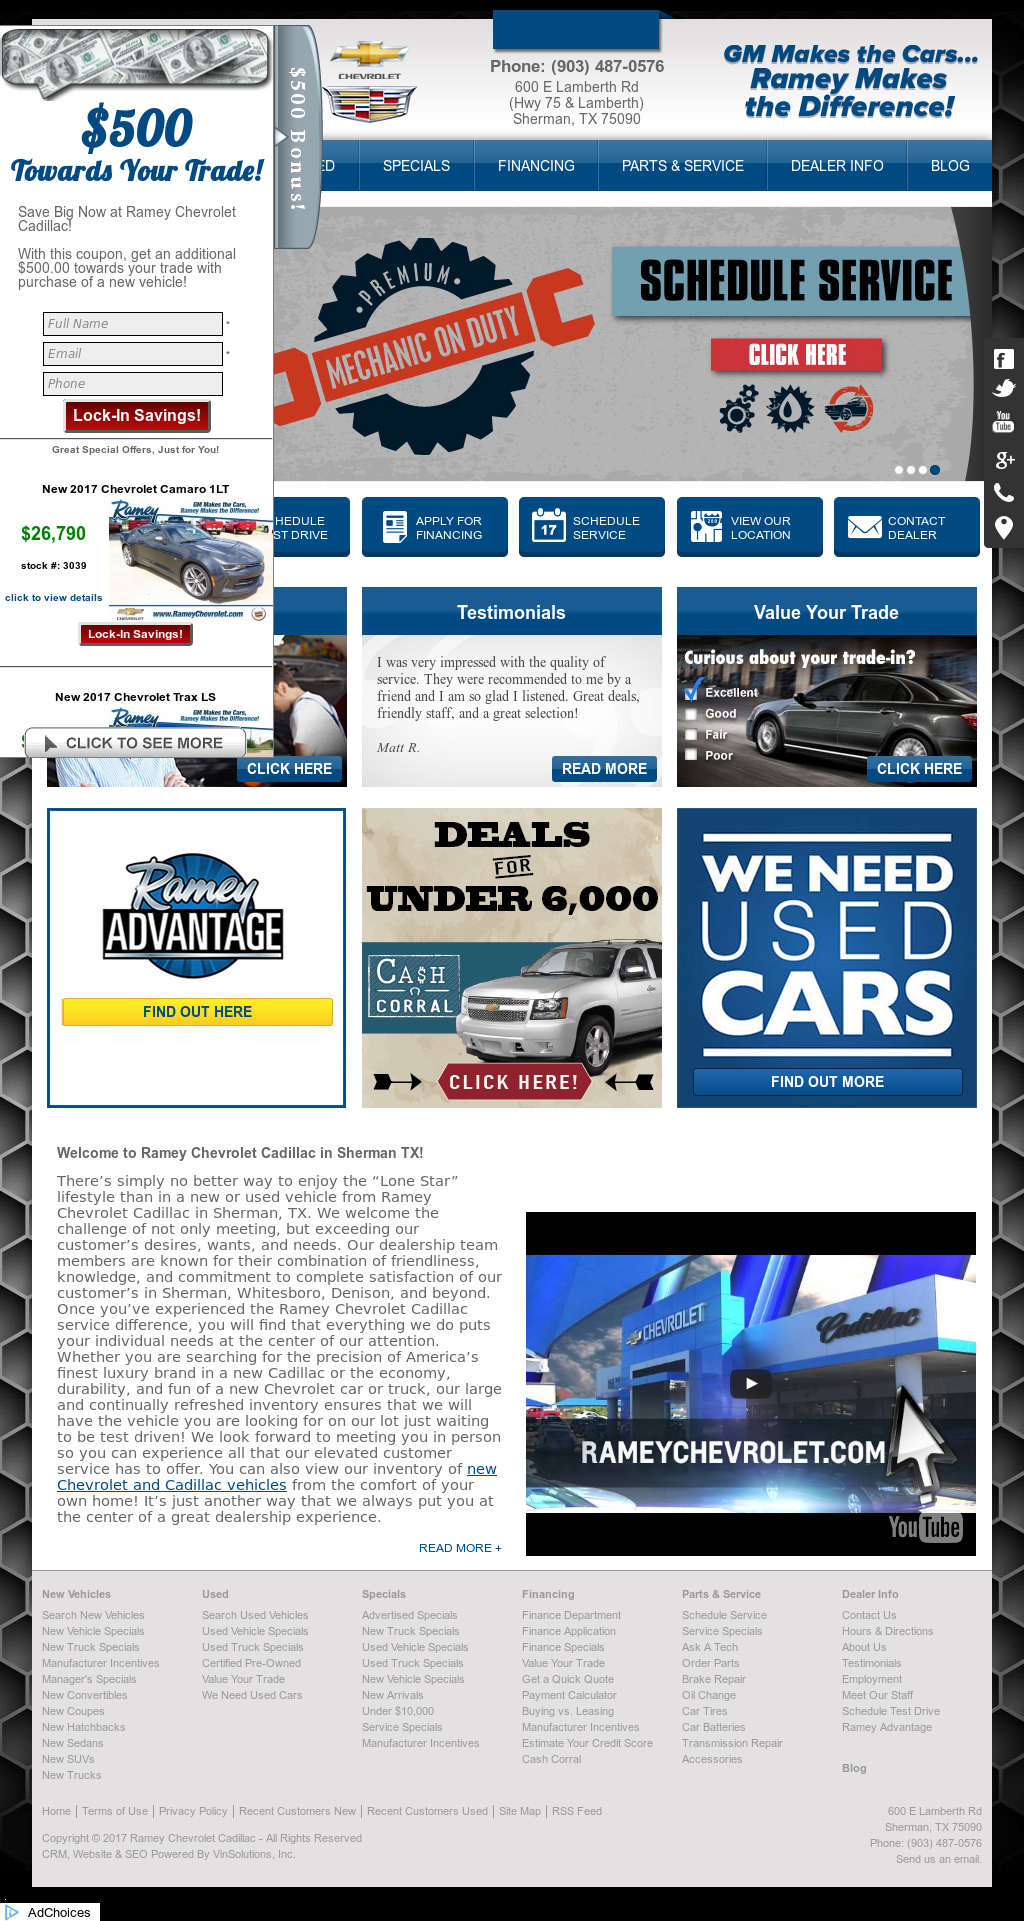 Superb Ramey Chevrolet Cadillacu0027s Website Screenshot On May 2017